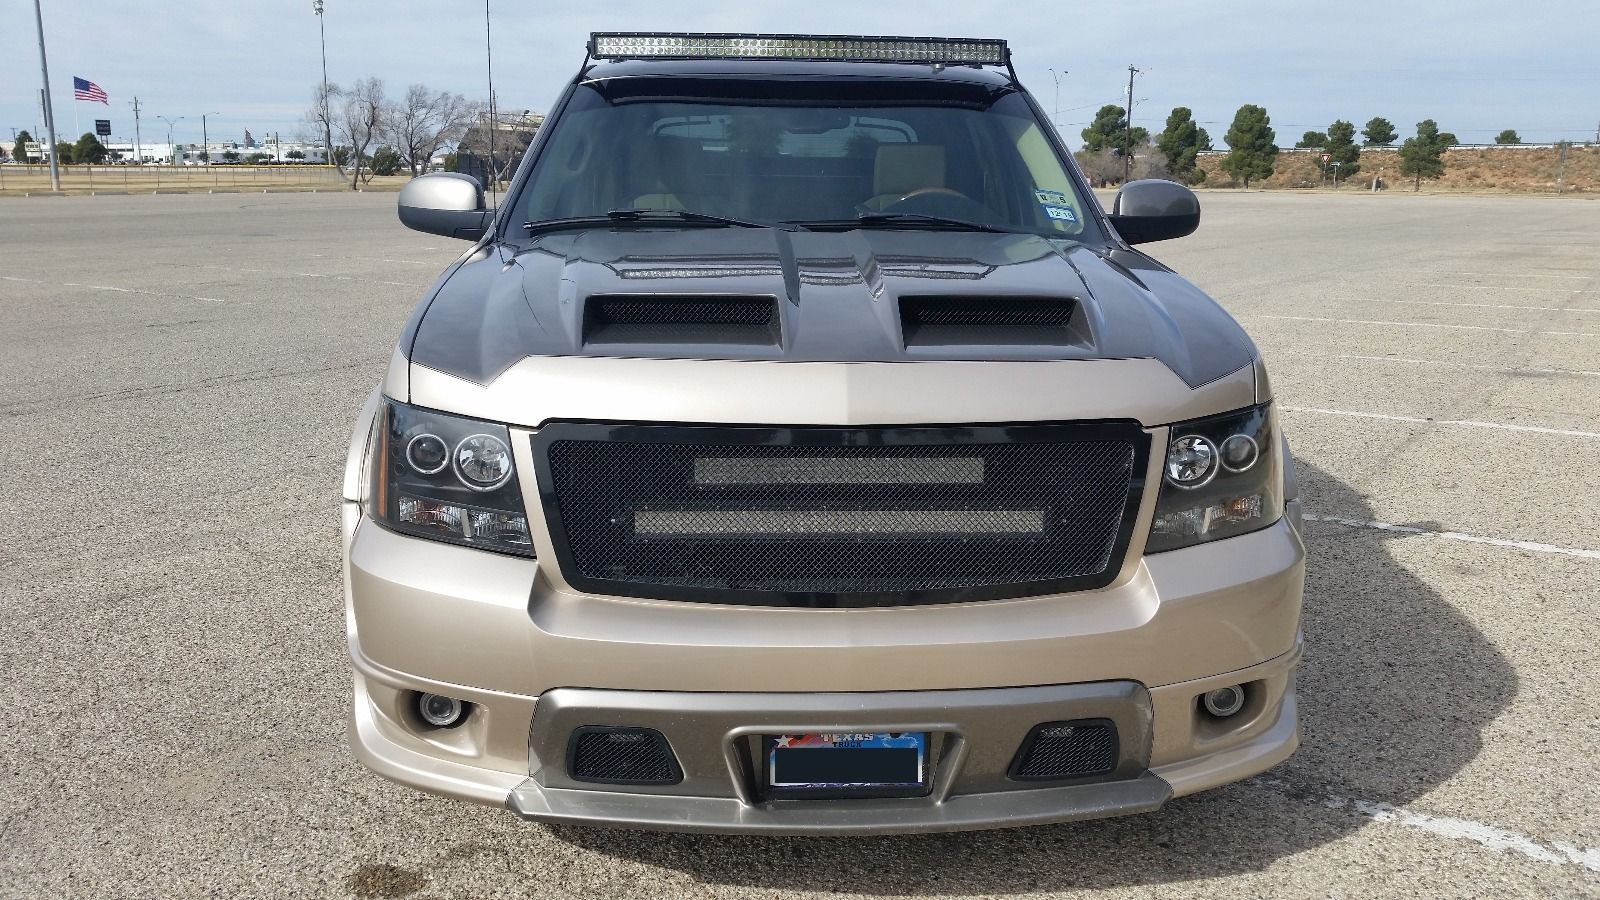 Chevrolet Avalanche 2016 >> 2008 Chevrolet Avalanche LT Custom Conversion for sale